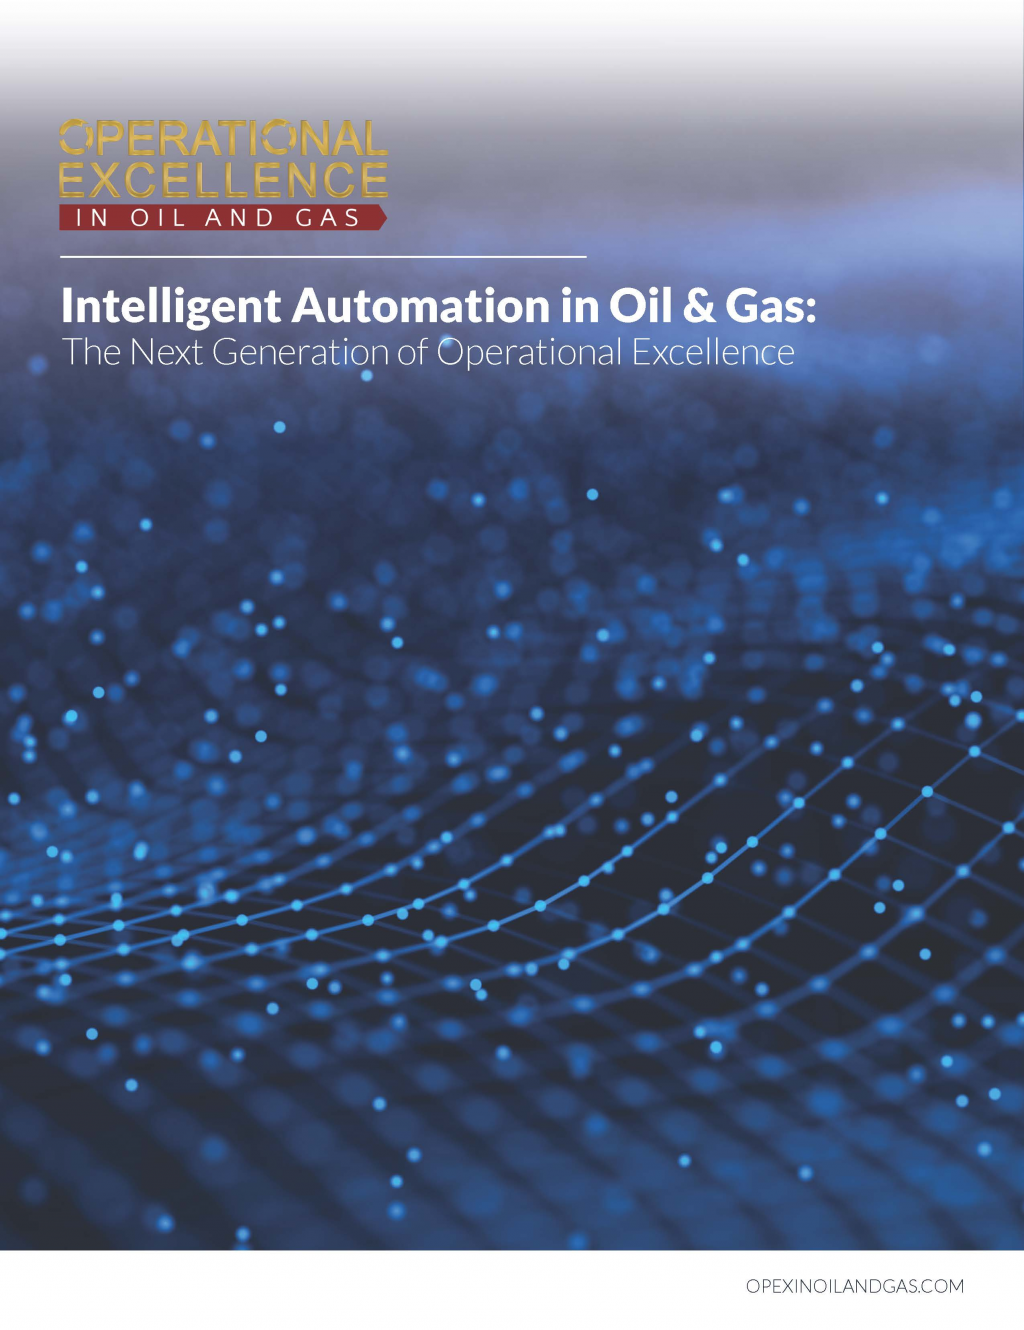 Intelligent Automation in Oil & Gas Report